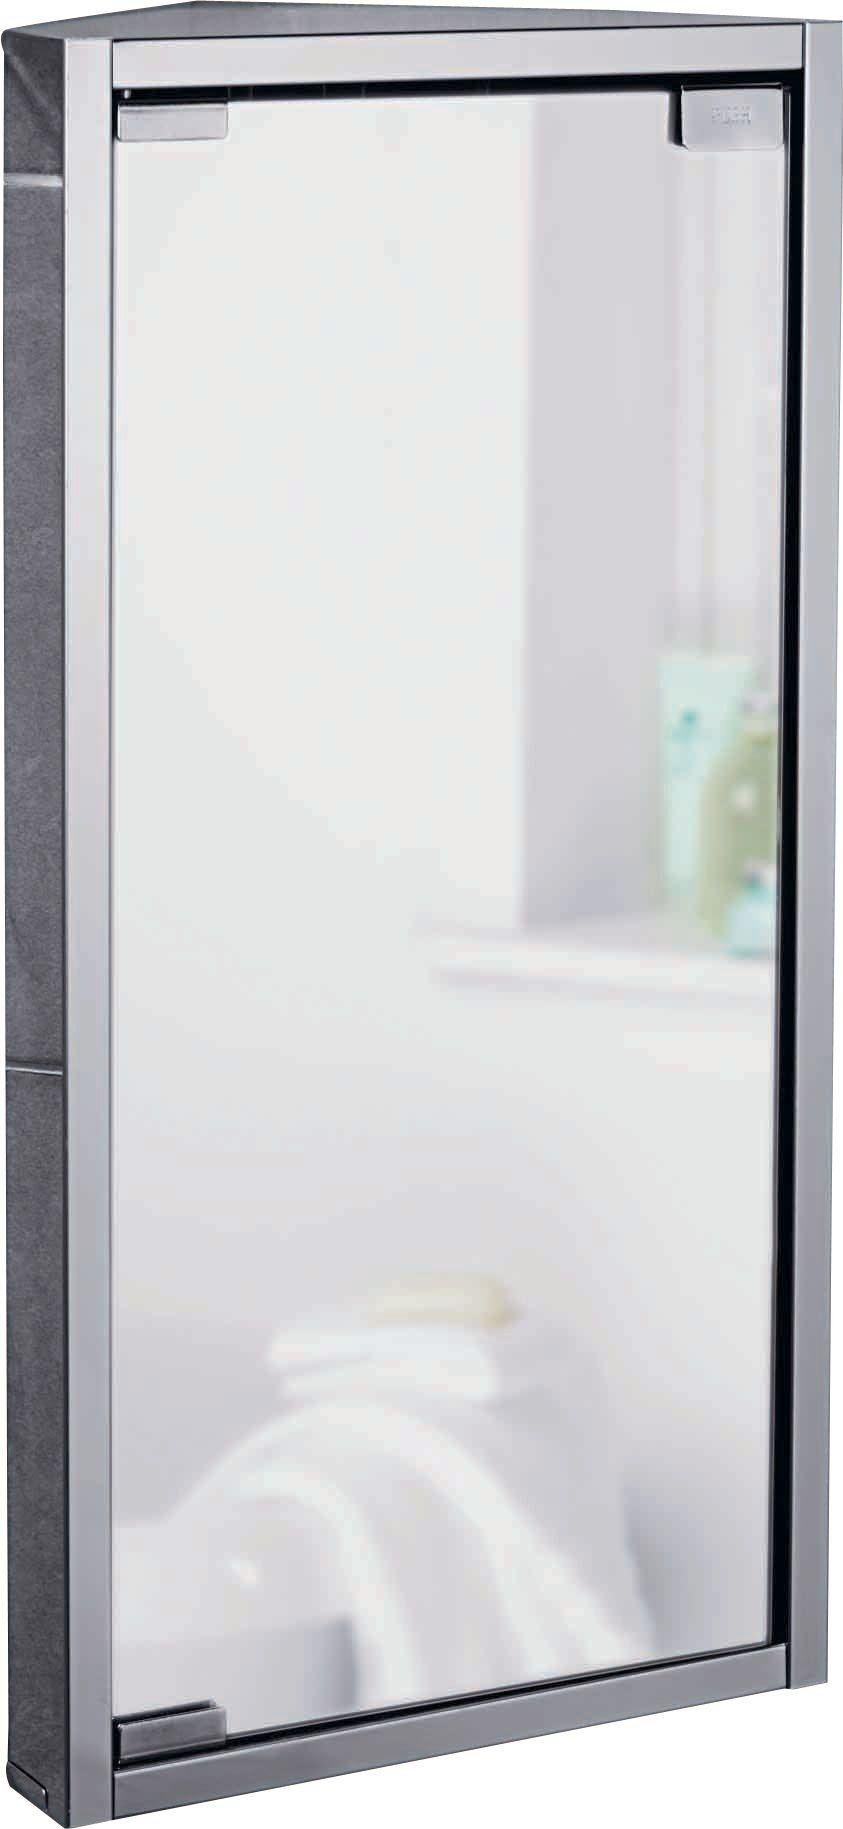 home mirrored bathroom corner cabinet stainless steel - Corner Bathroom Cabinet